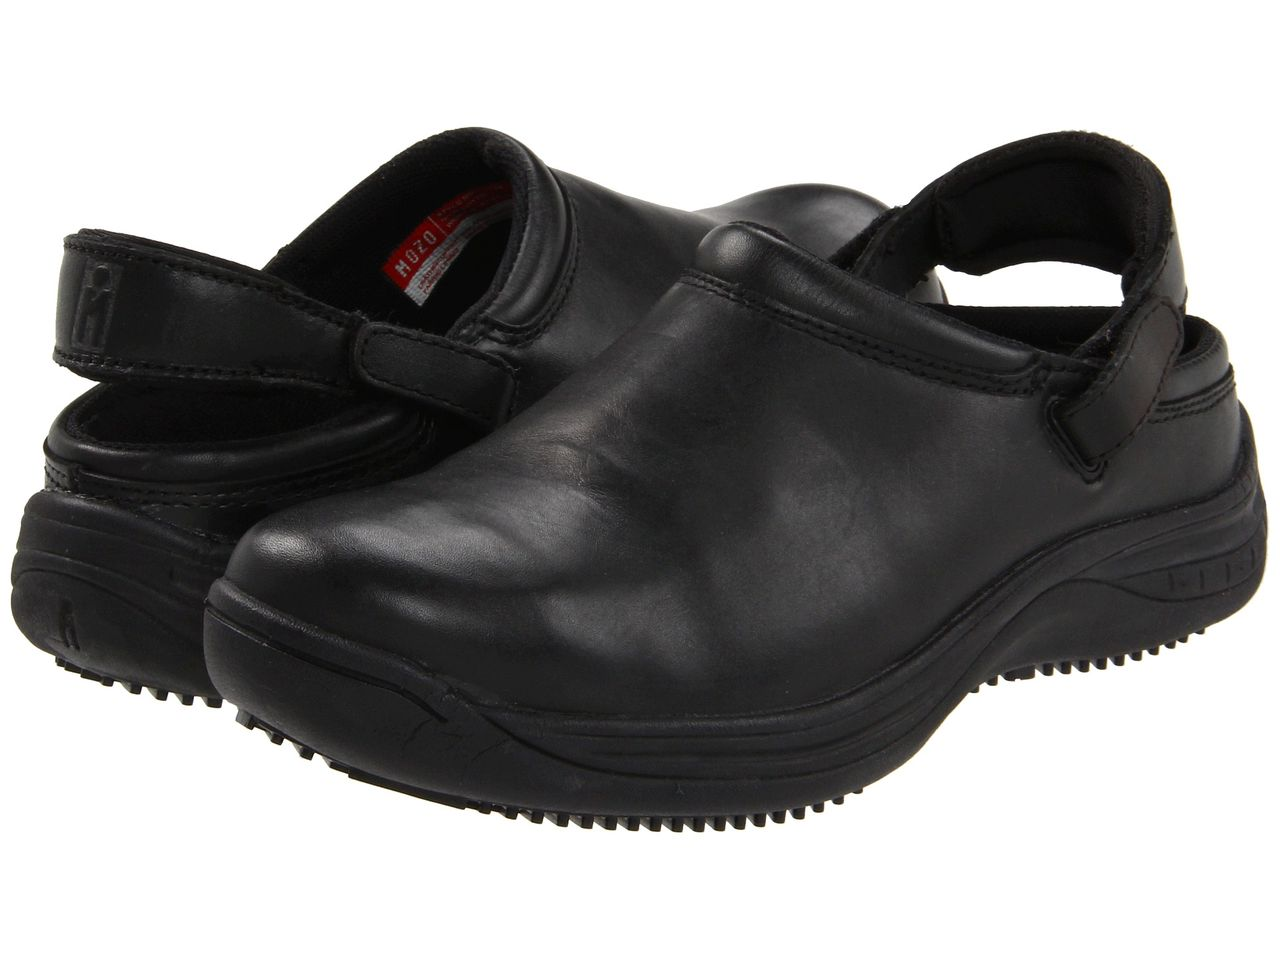 new womens mozo vitto solid black leather clog slip